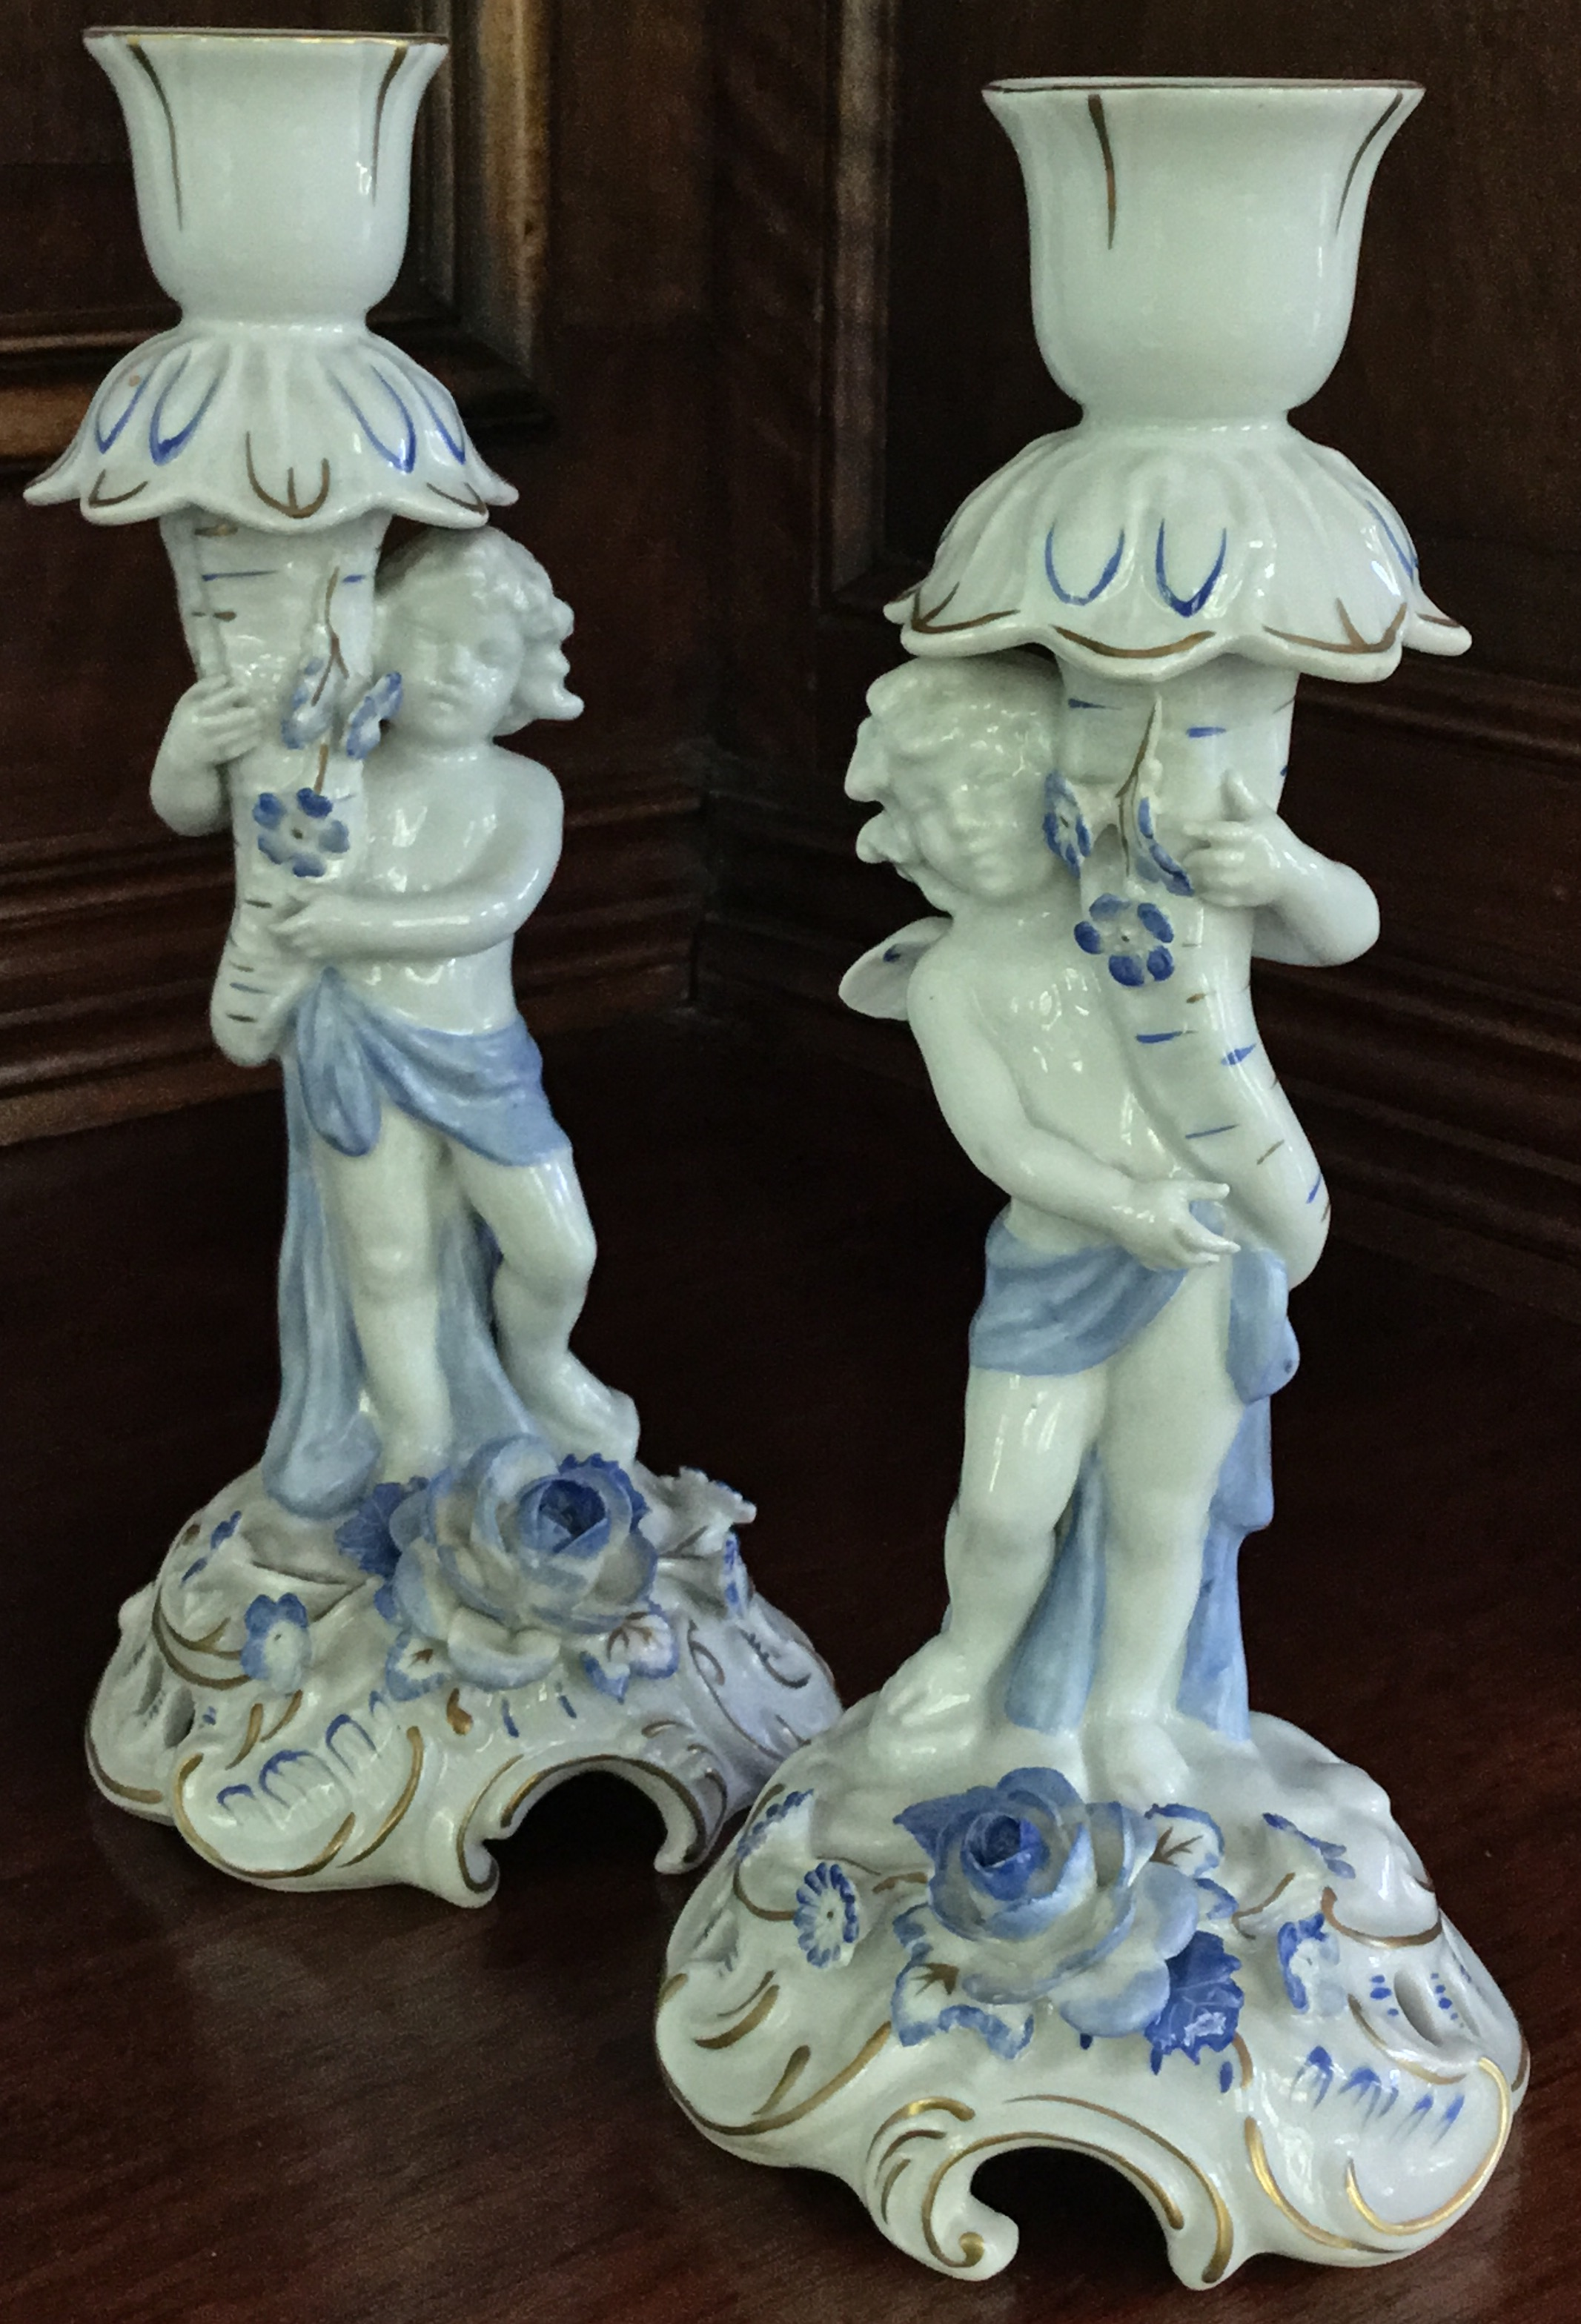 Schierholz Cherub Candlestick Holders, Set of 2